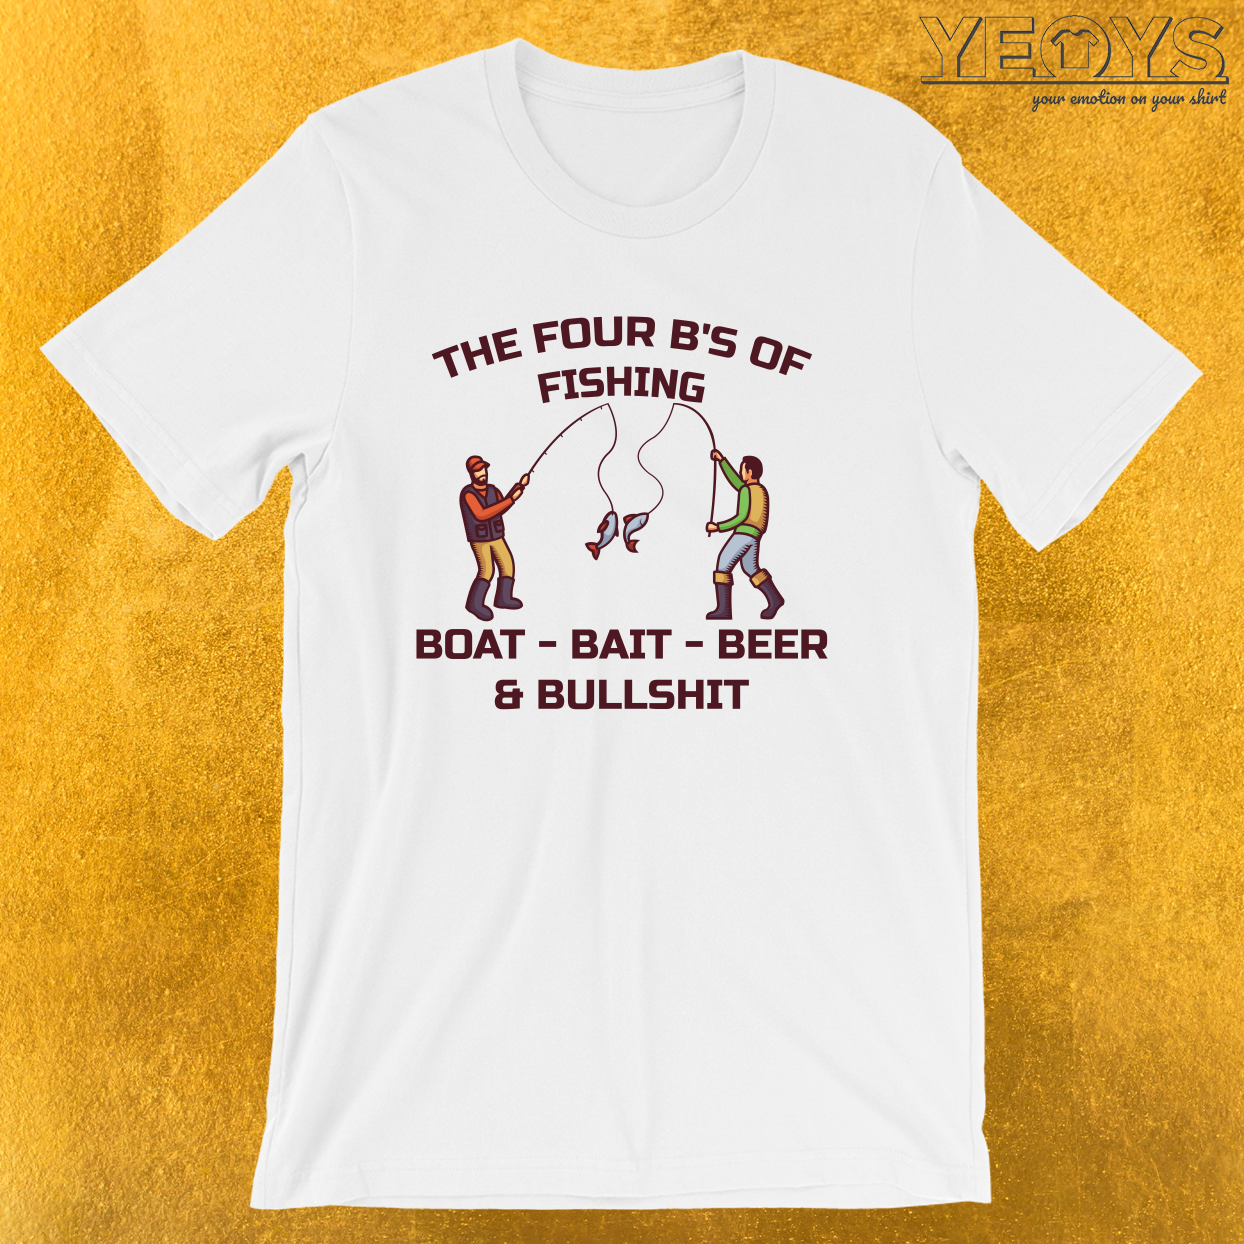 The Four B's Of Fishing – Fishing Trip Tee